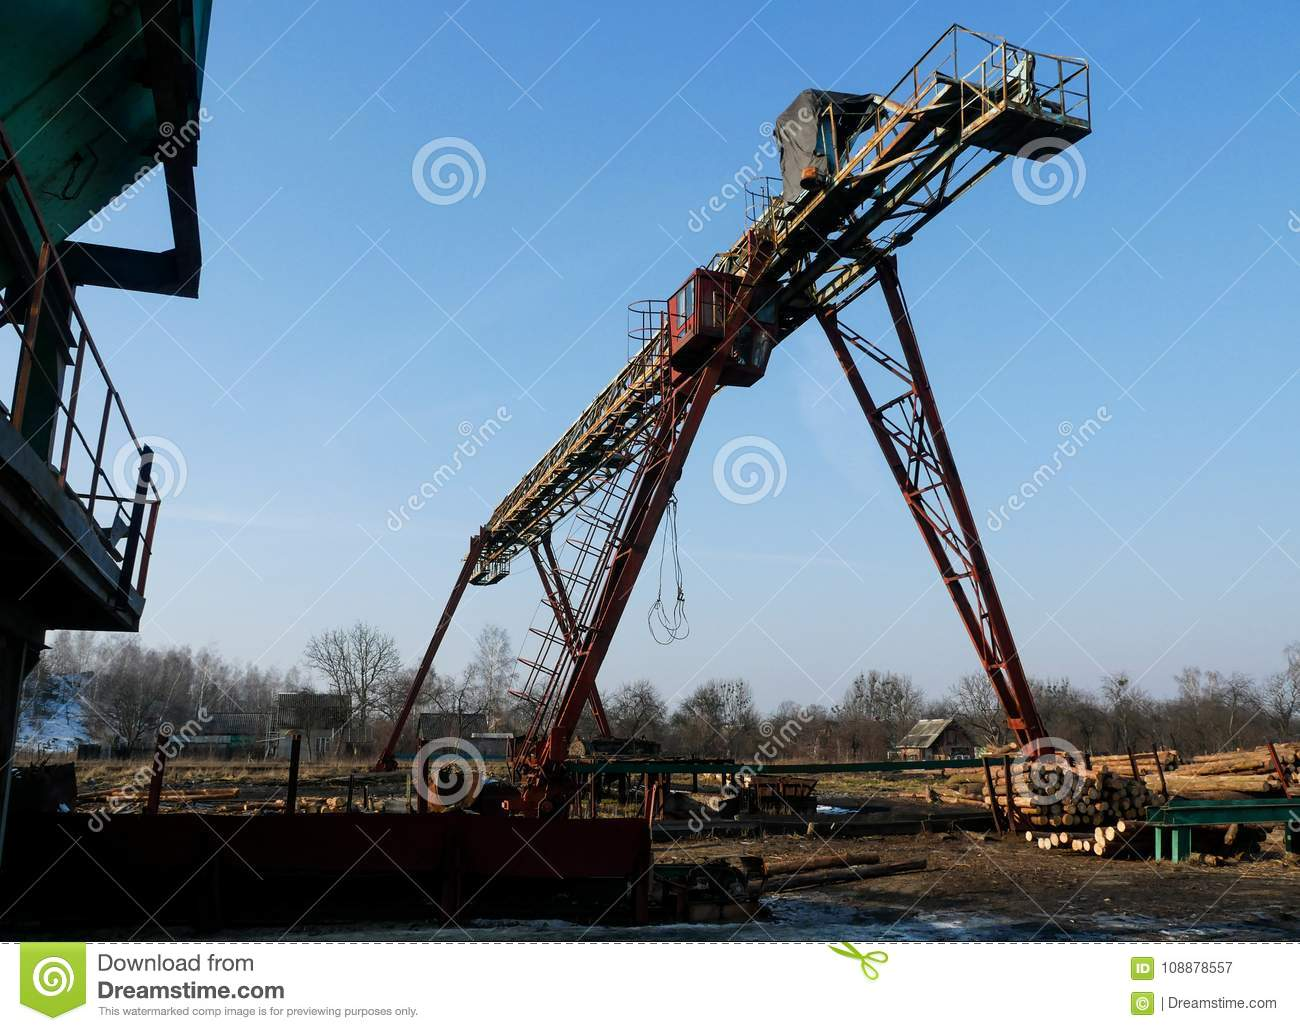 Sawmill industrial machine stock image  Image of forest